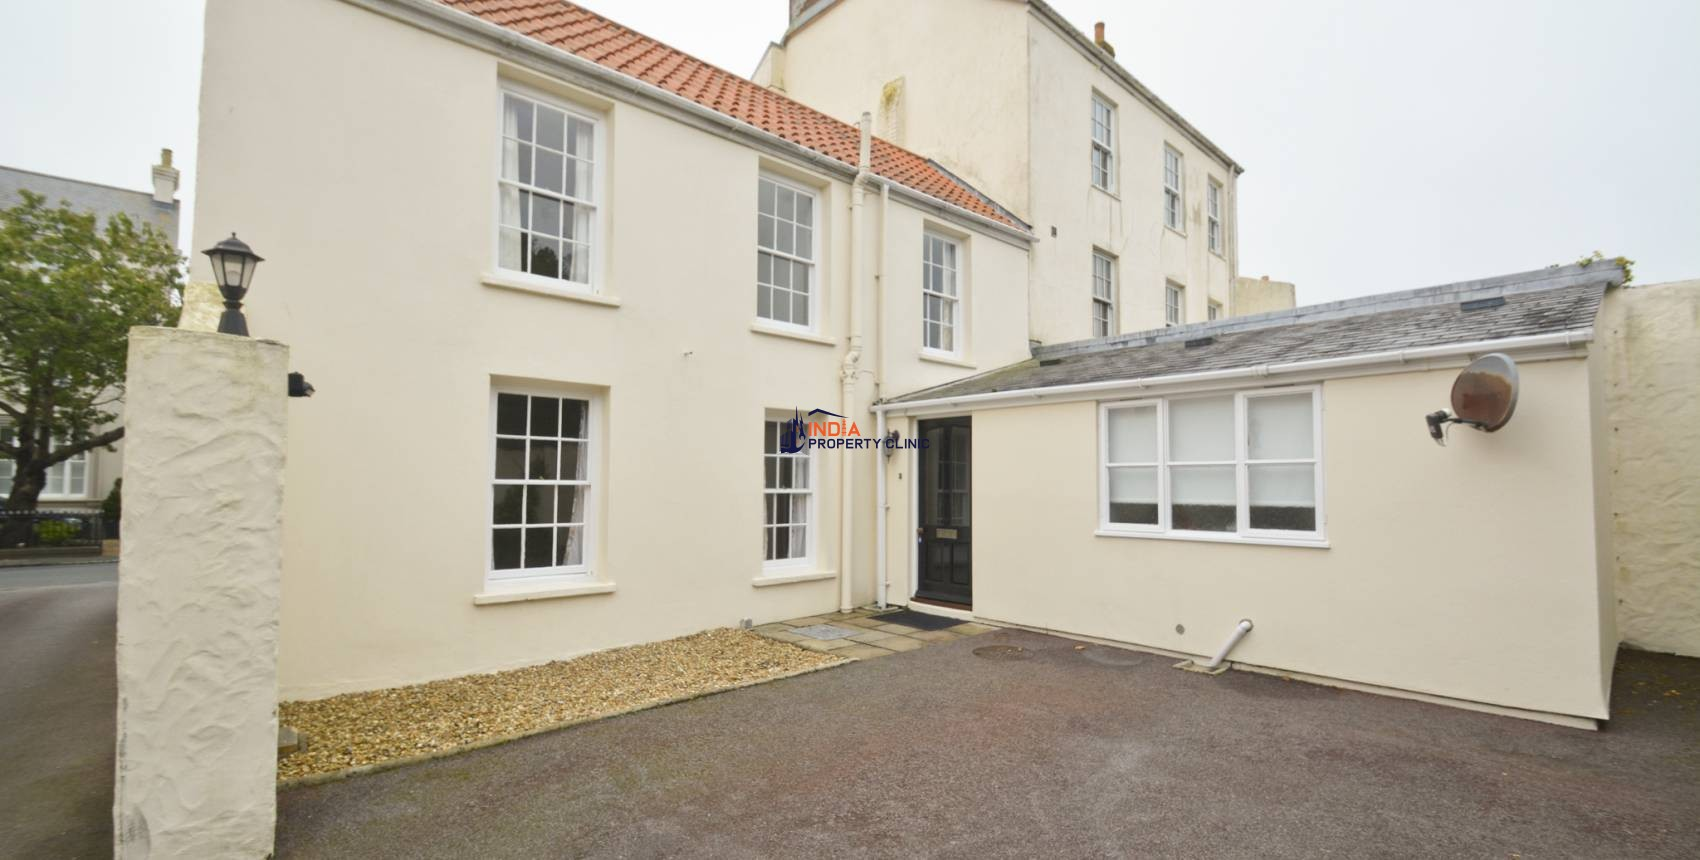 House For Sale in St Peter Port